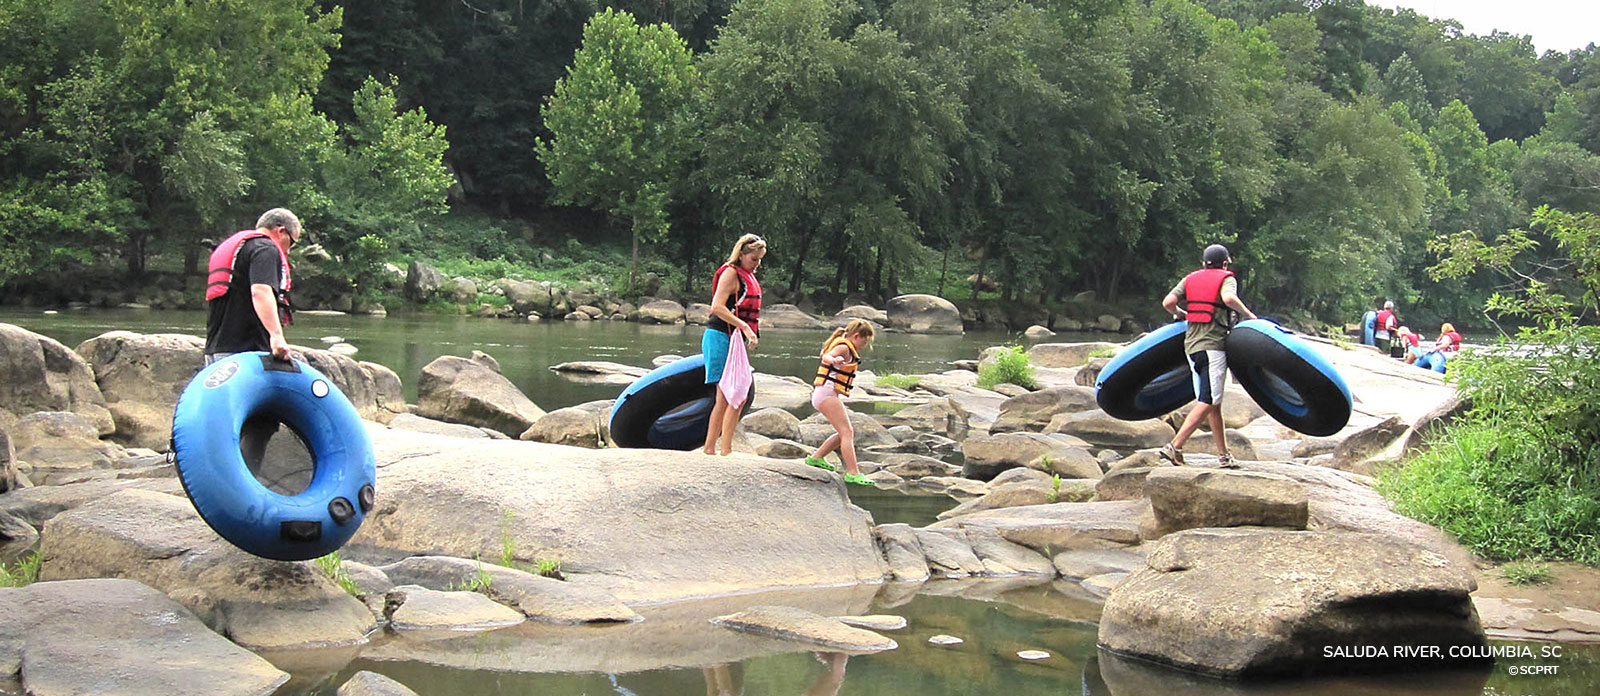 River tubing in SC